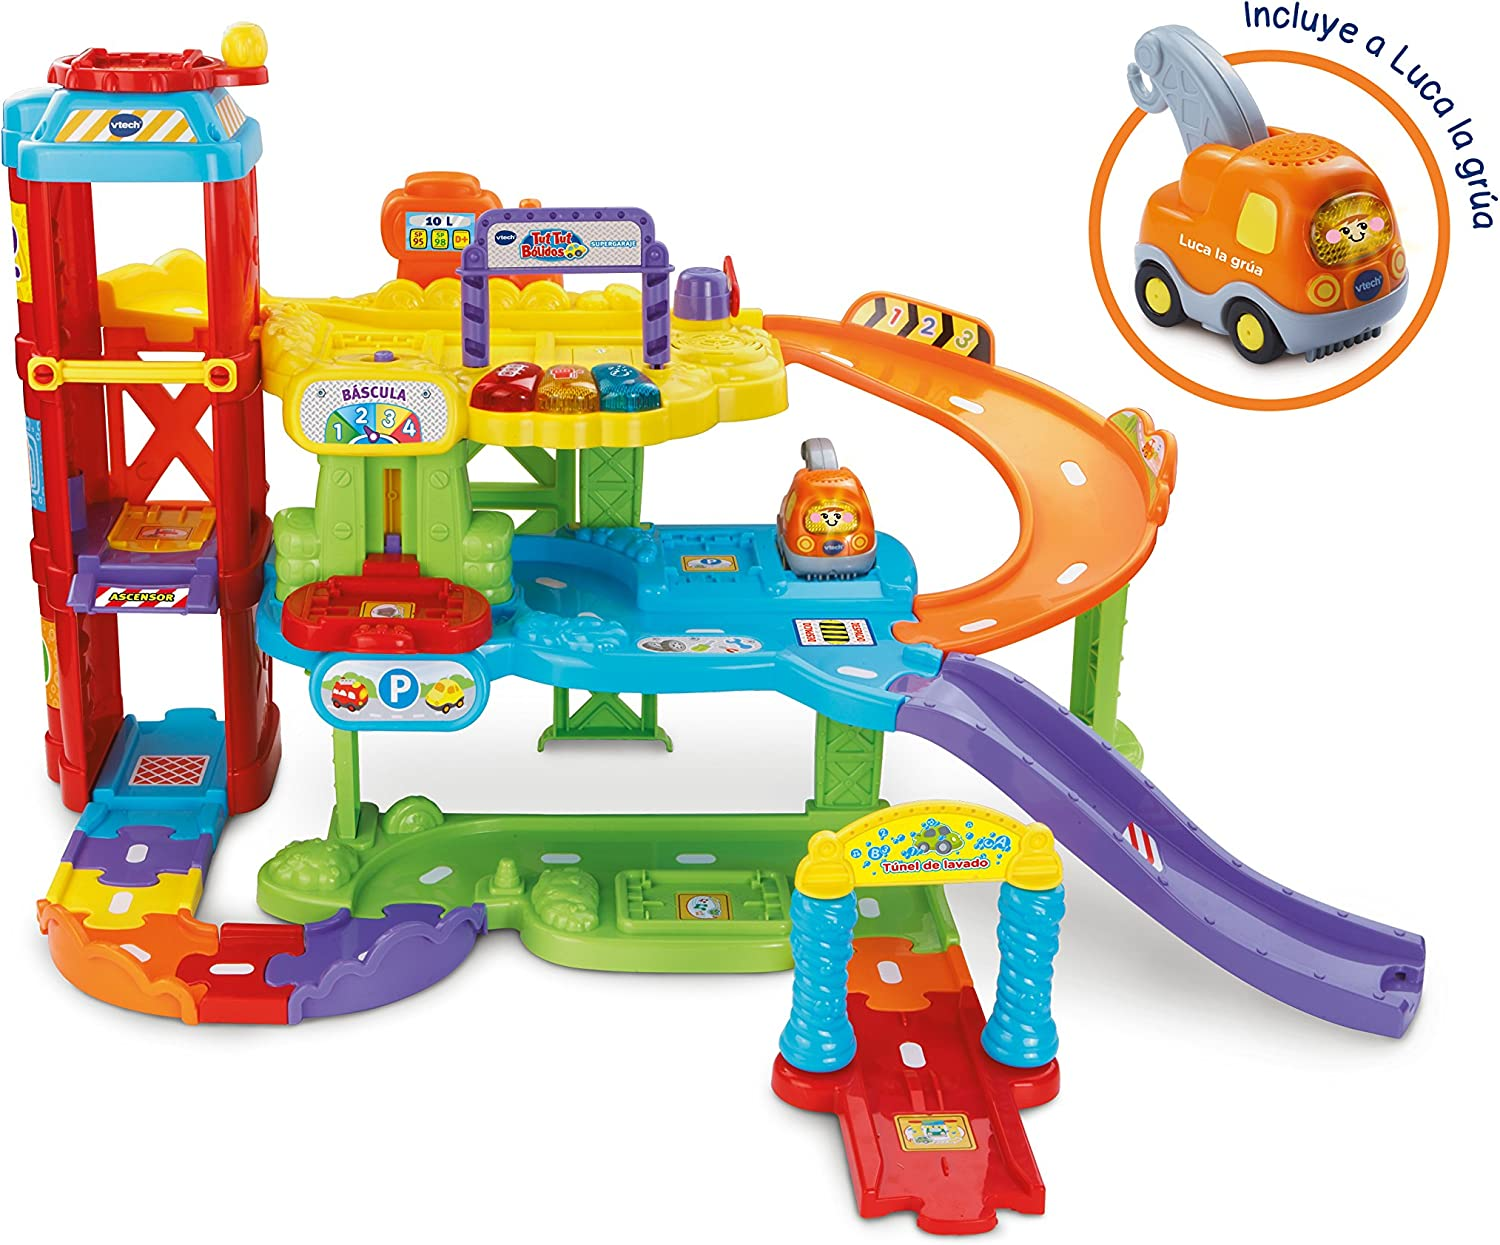 Vtech Supergarage Tut Tut Balls  Includes 3 Songs and 12 Melodies with Phrases and Sounds (3480180022)